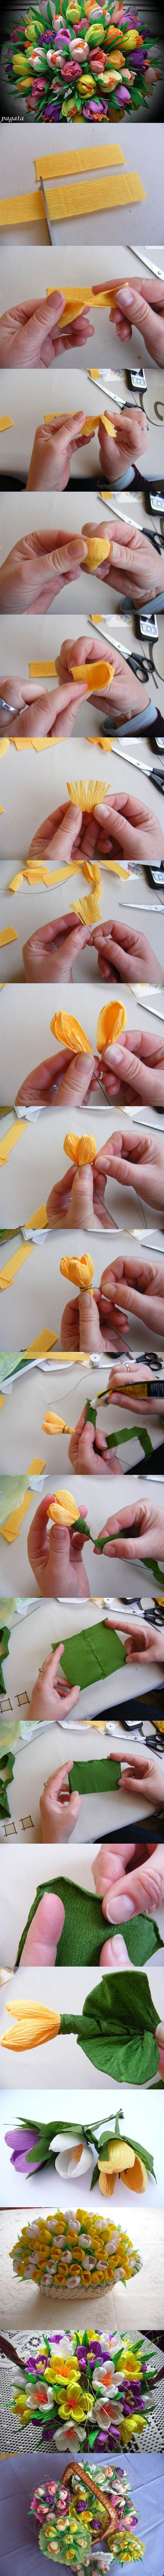 DIY Beautiful Bouquet of Crepe Paper Crocuses | iCreativeIdeas.com Follow Us on Facebook --> https://www.facebook.com/icreativeideas